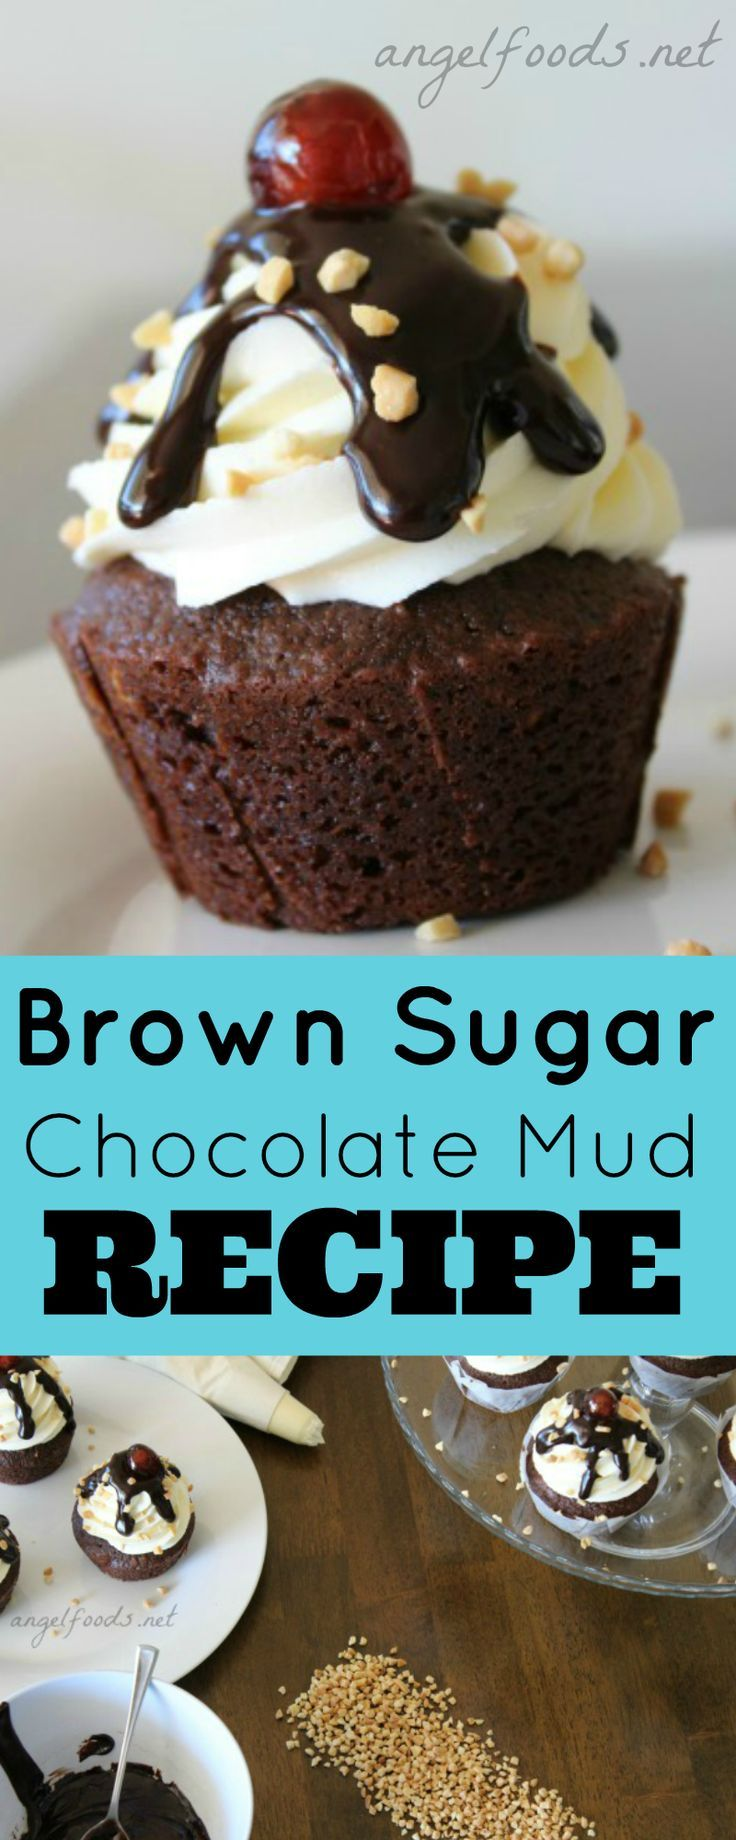 Brown Sugar Choc Mud Cupcake Recipe | A rich, caramel, fudgy chocolate mud cake cupcake with brown sugar, this recipe is ridiculously easy! It looks like a chocolate sundae or carnival cupcake with chocolate ganache drizzle and cherry on top. | http://angelfoods.net/brown-sugar-chocolate-mud-cake-cupcake-recipe/